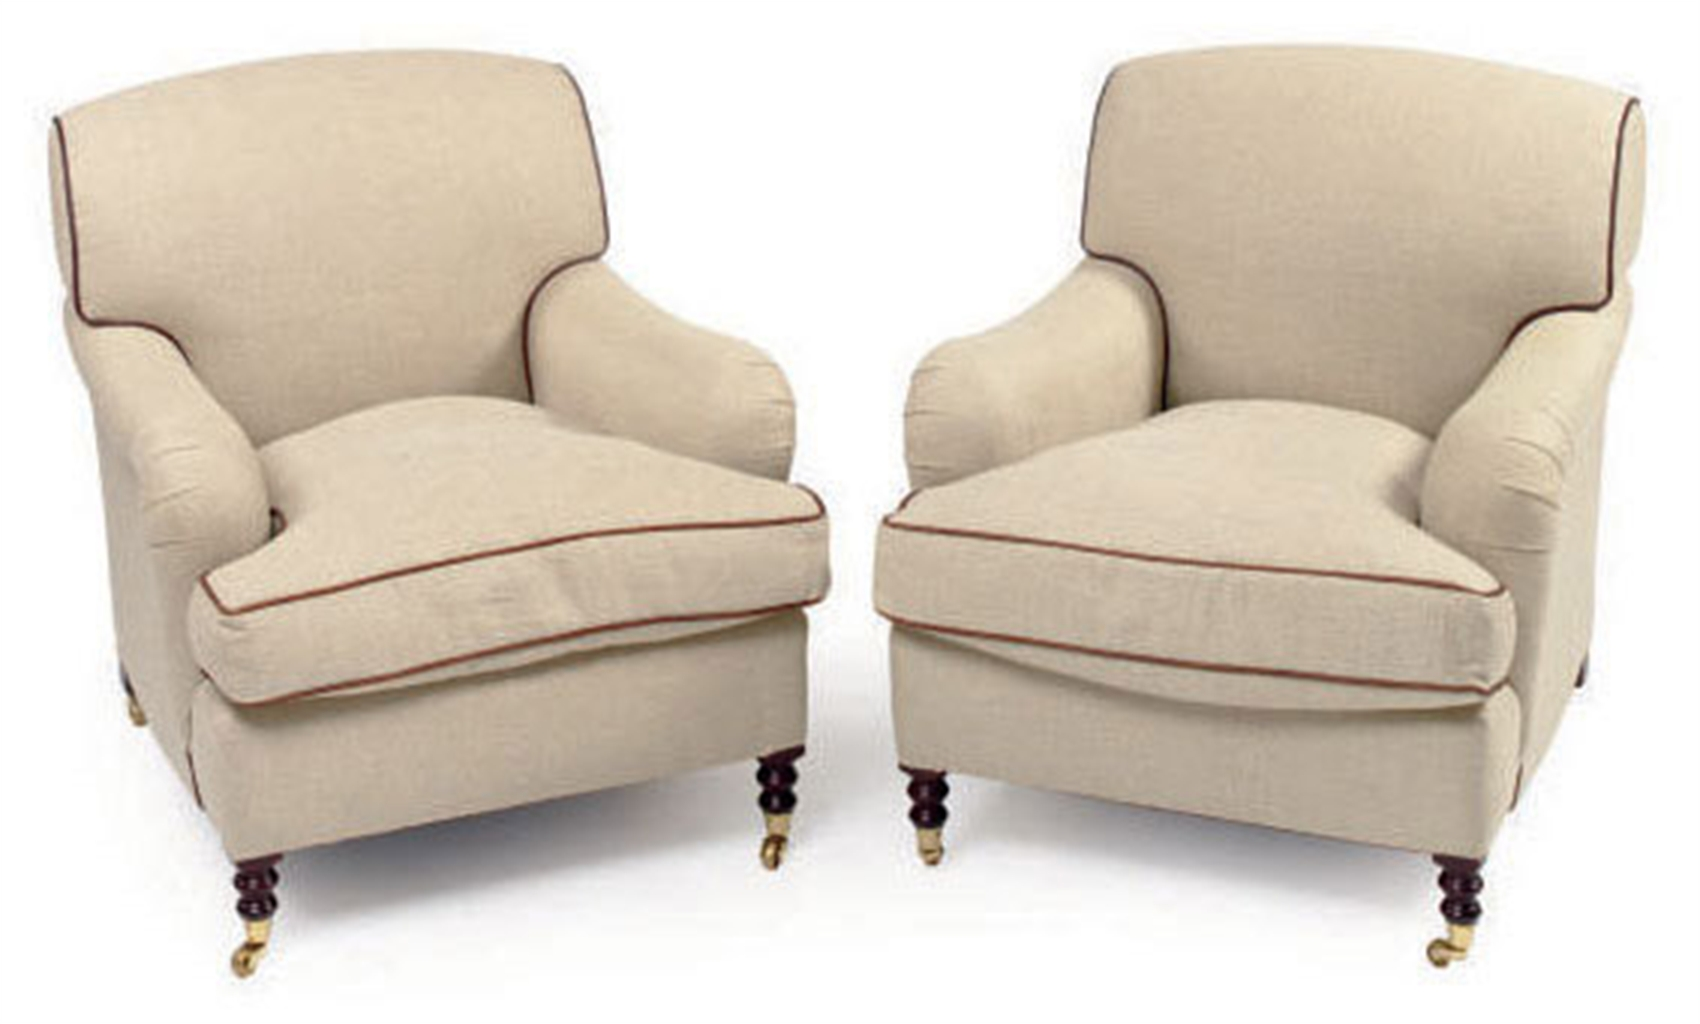 A Pair Of Leather Trimmed Cream Twill Upholstered Club Chairs By George Smith Late